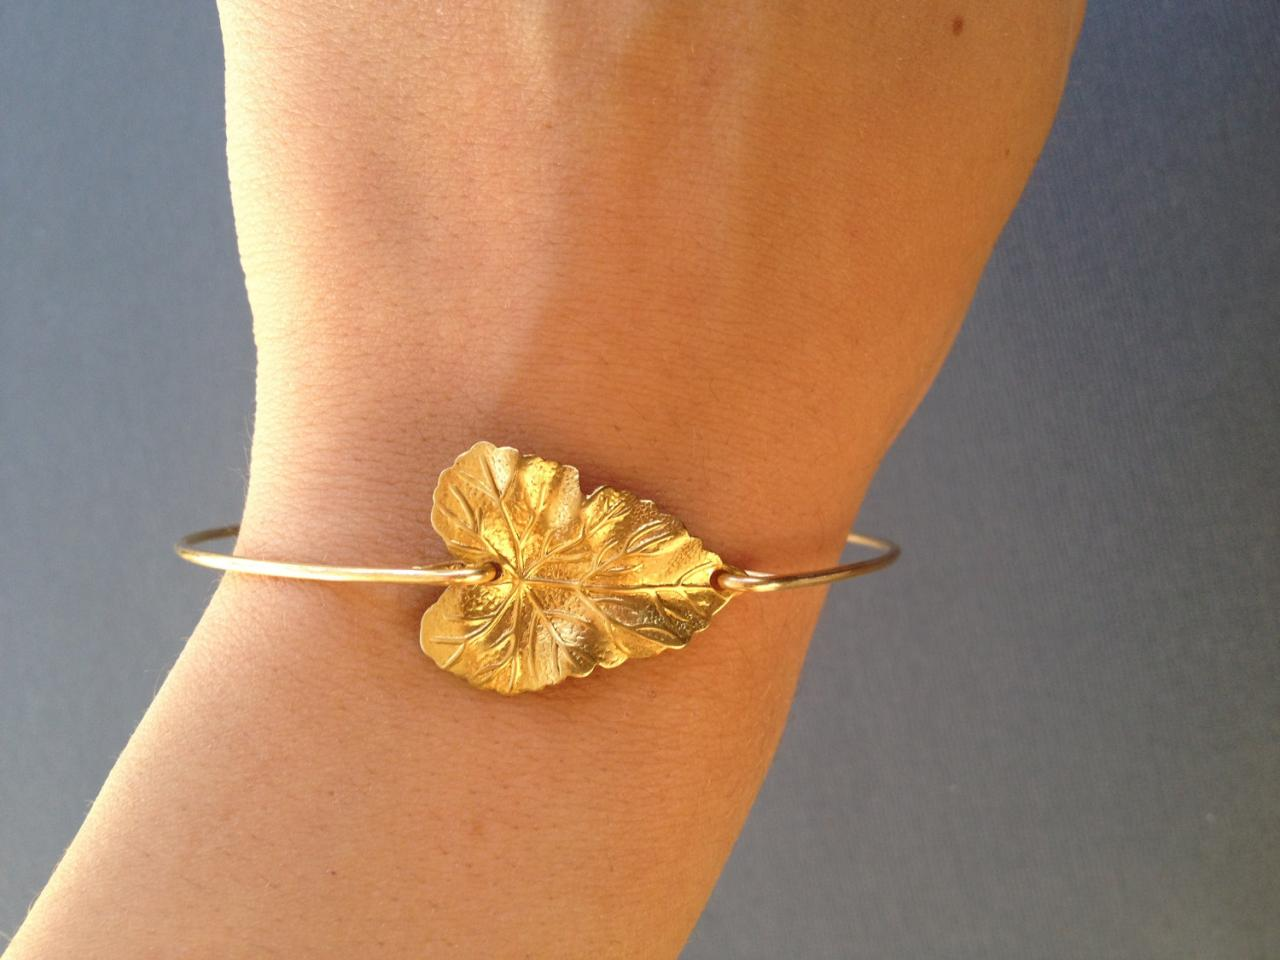 Fall in Love- Heart Leaf Bangle Bracelet